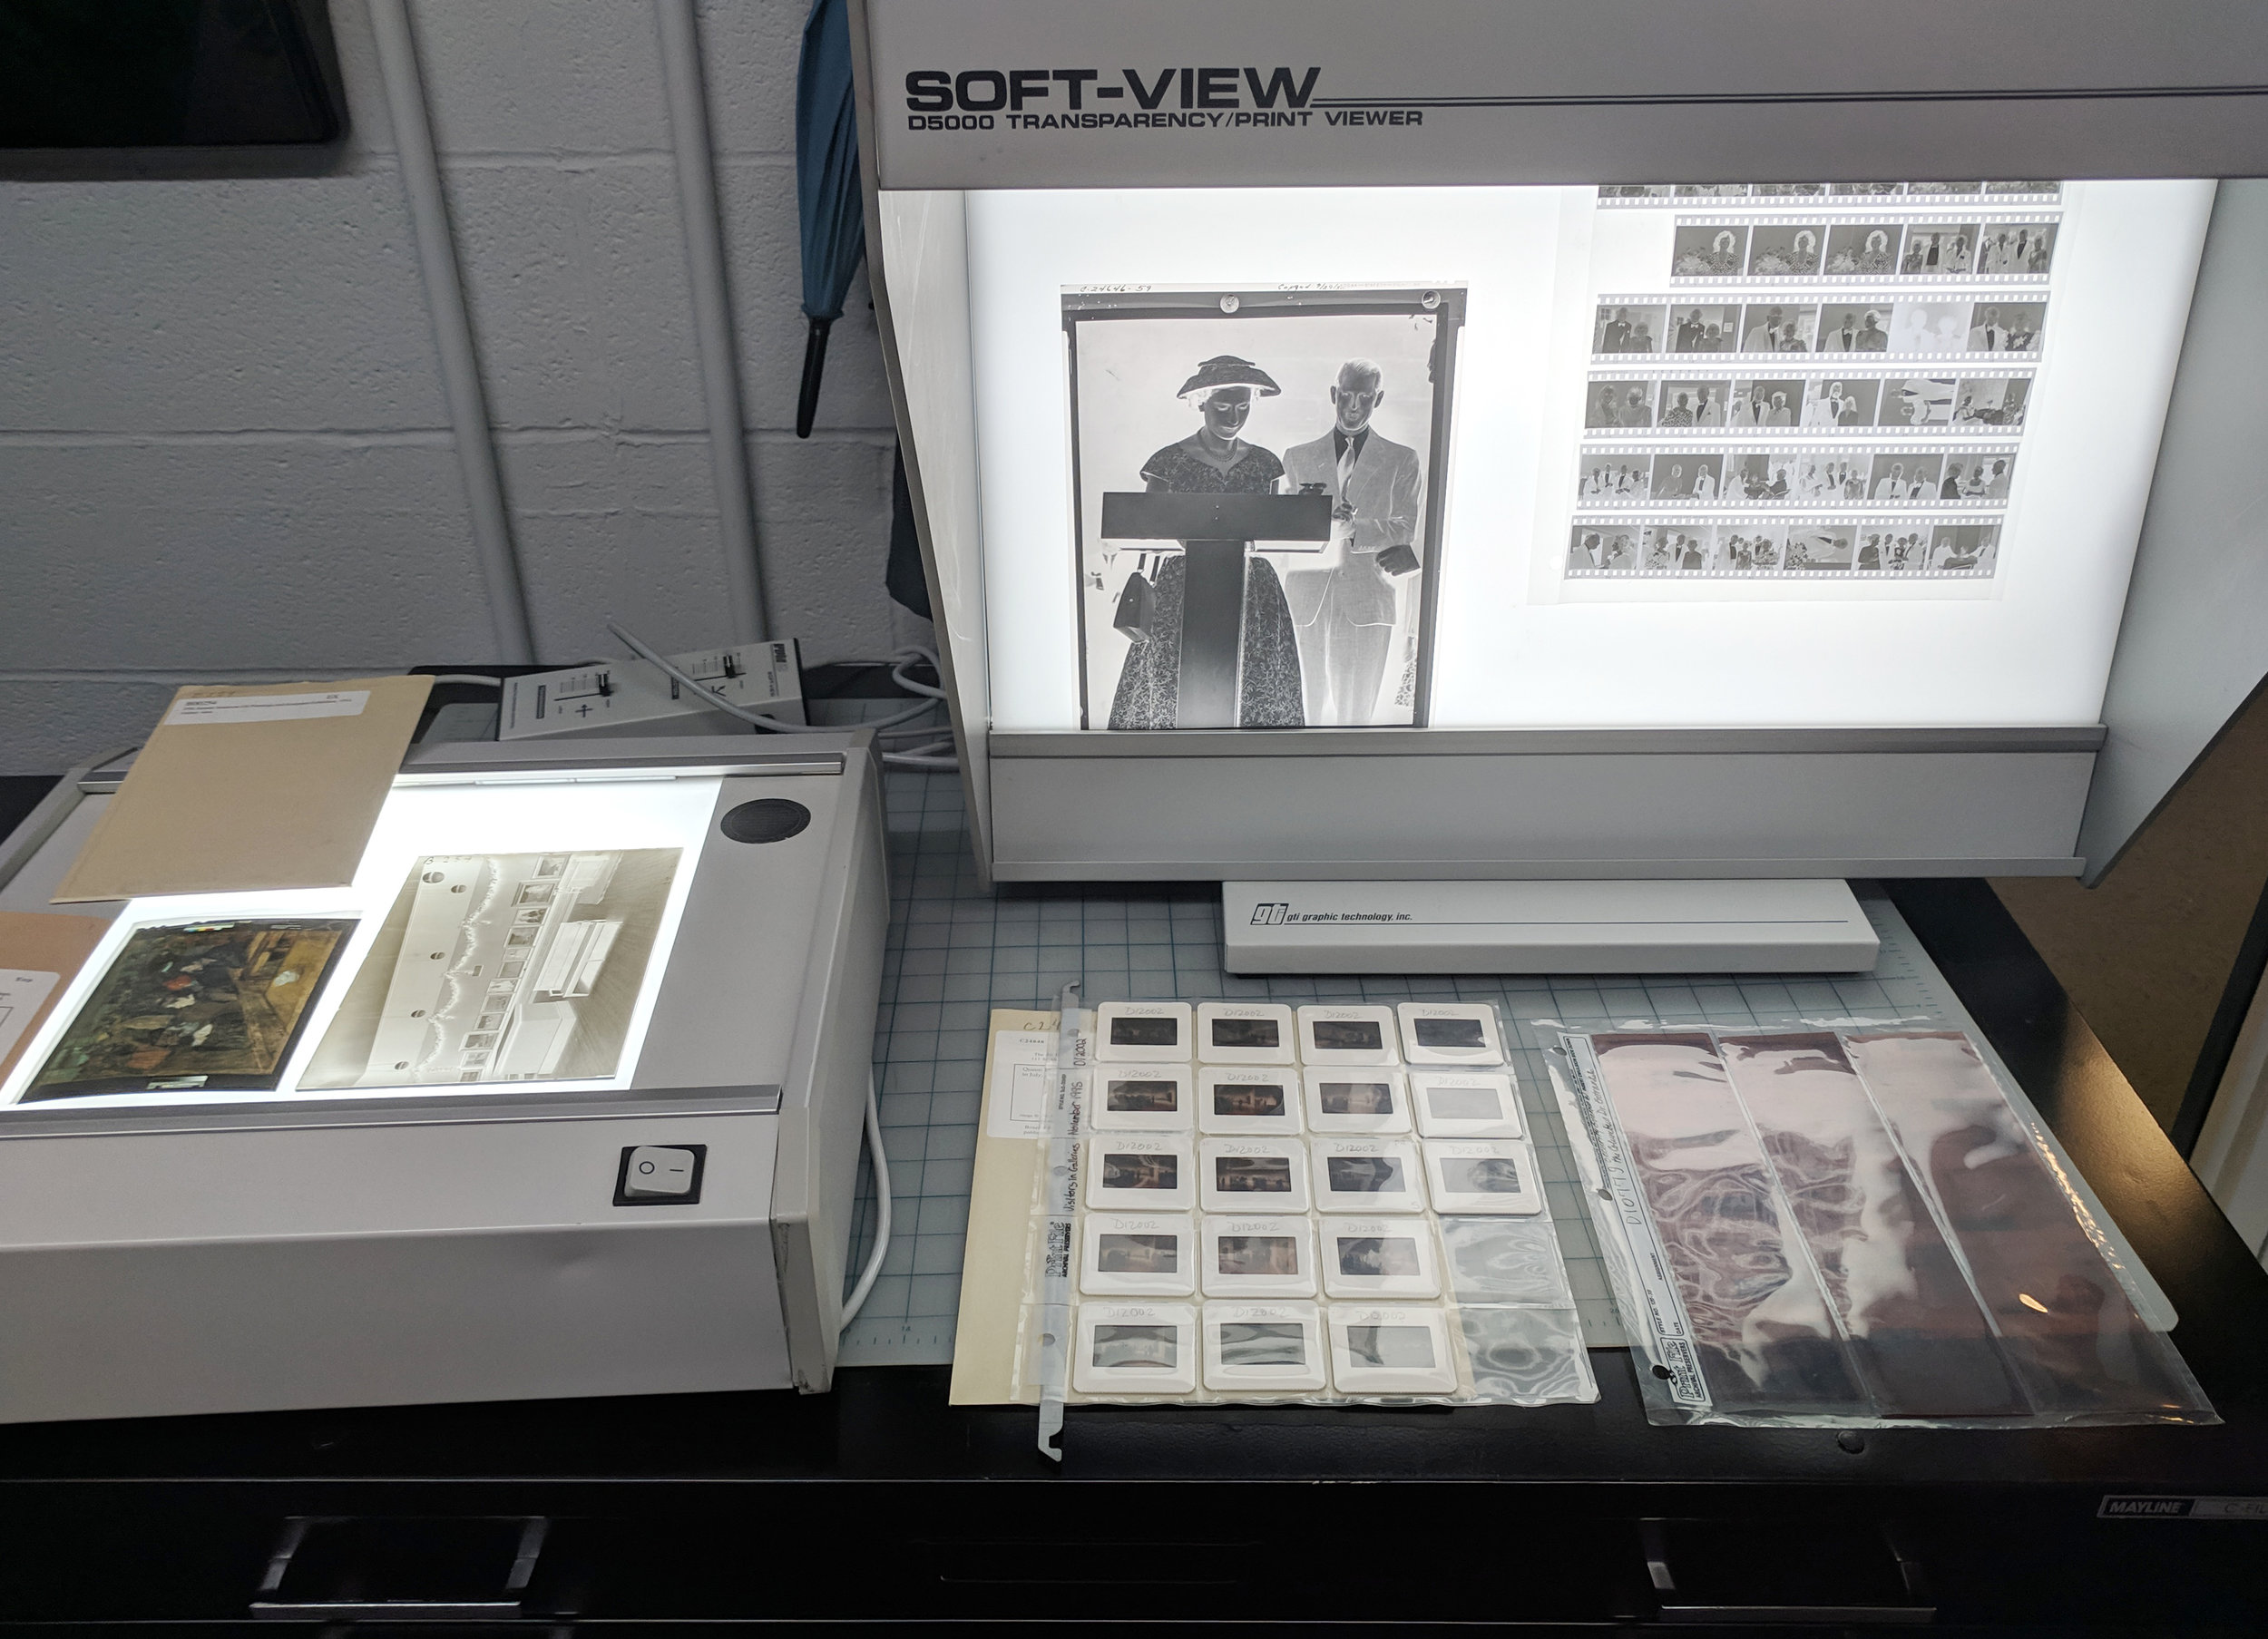 Original archival negatives and transparencies